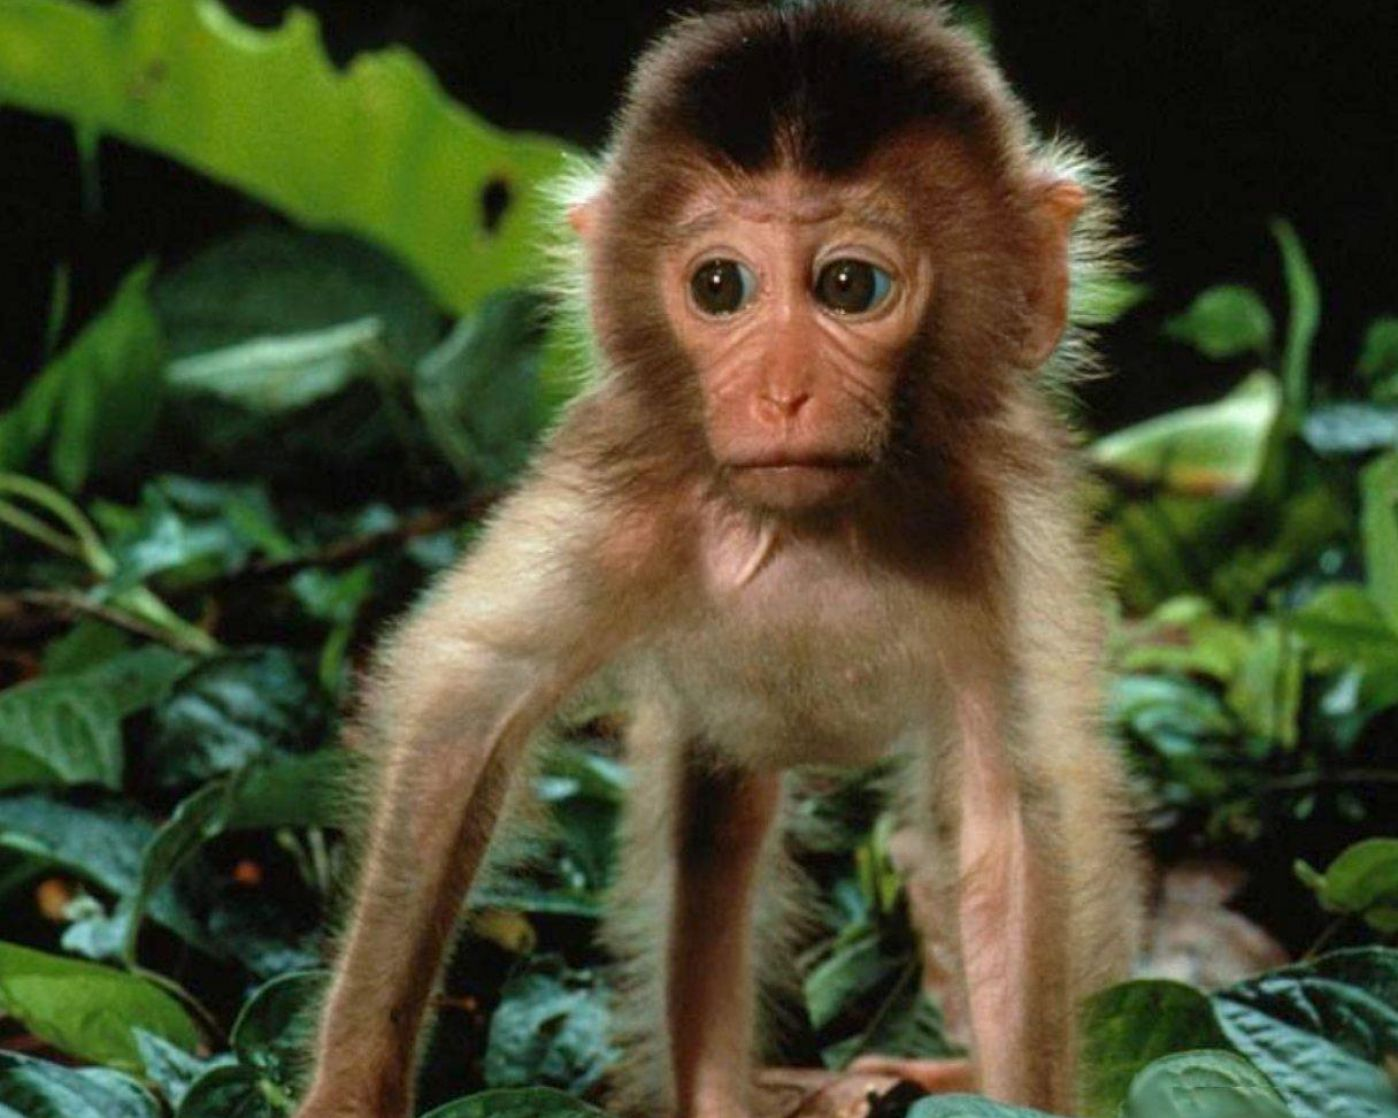 Cute baby monkey wallpapers - photo#5